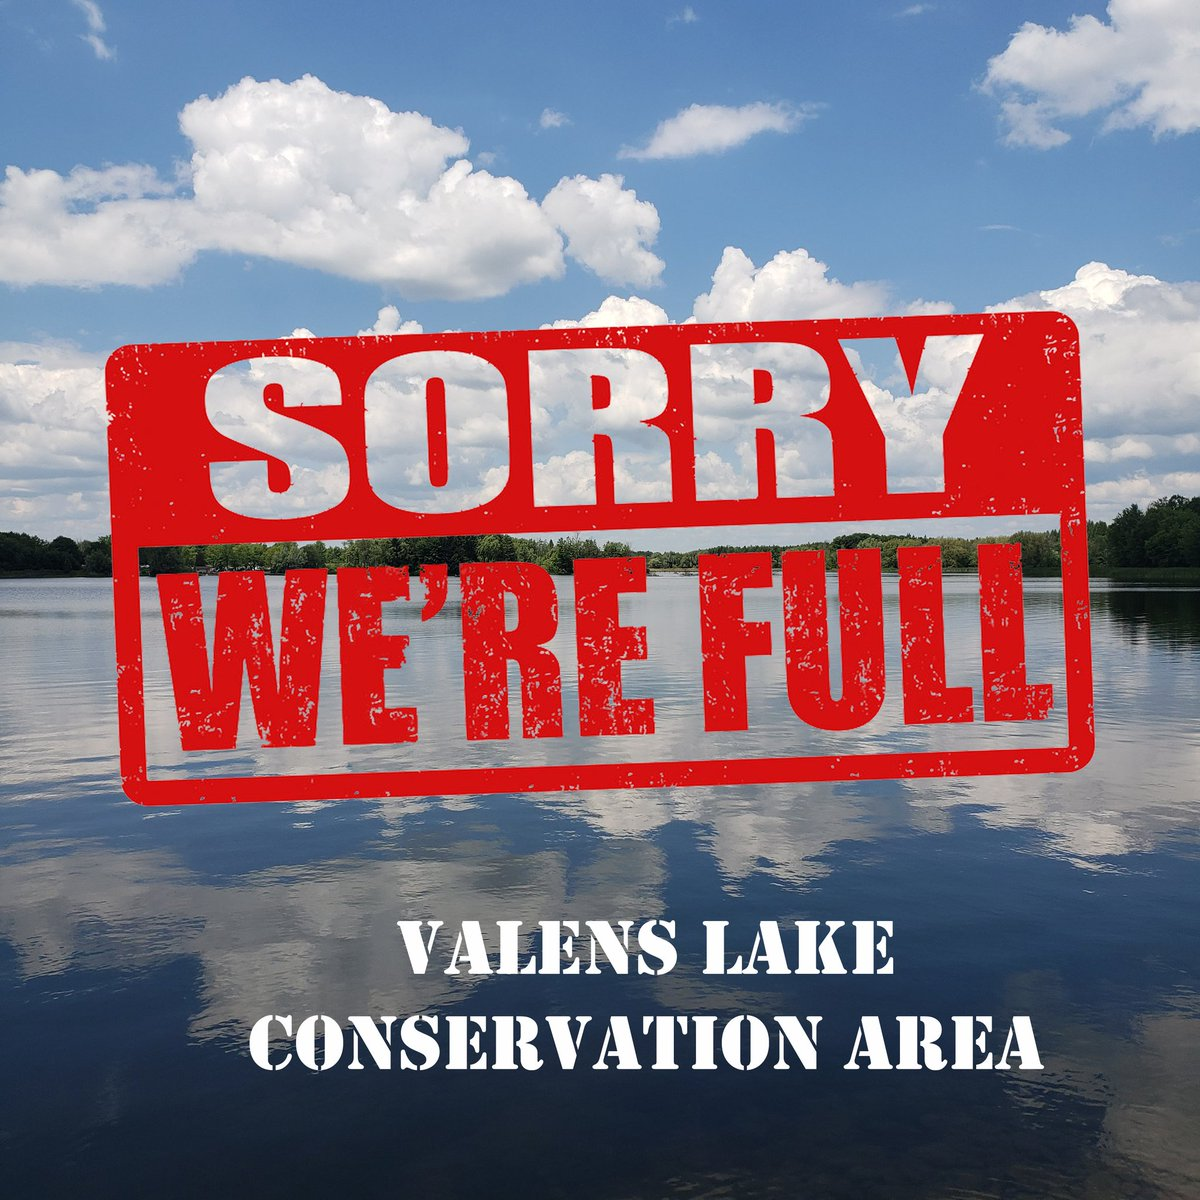 Sunday, August 30 @ 2:35 pm. Valens Lake has reached capacity and is now temporarily closed for day use visitors. https://t.co/t2iia0iLRJ